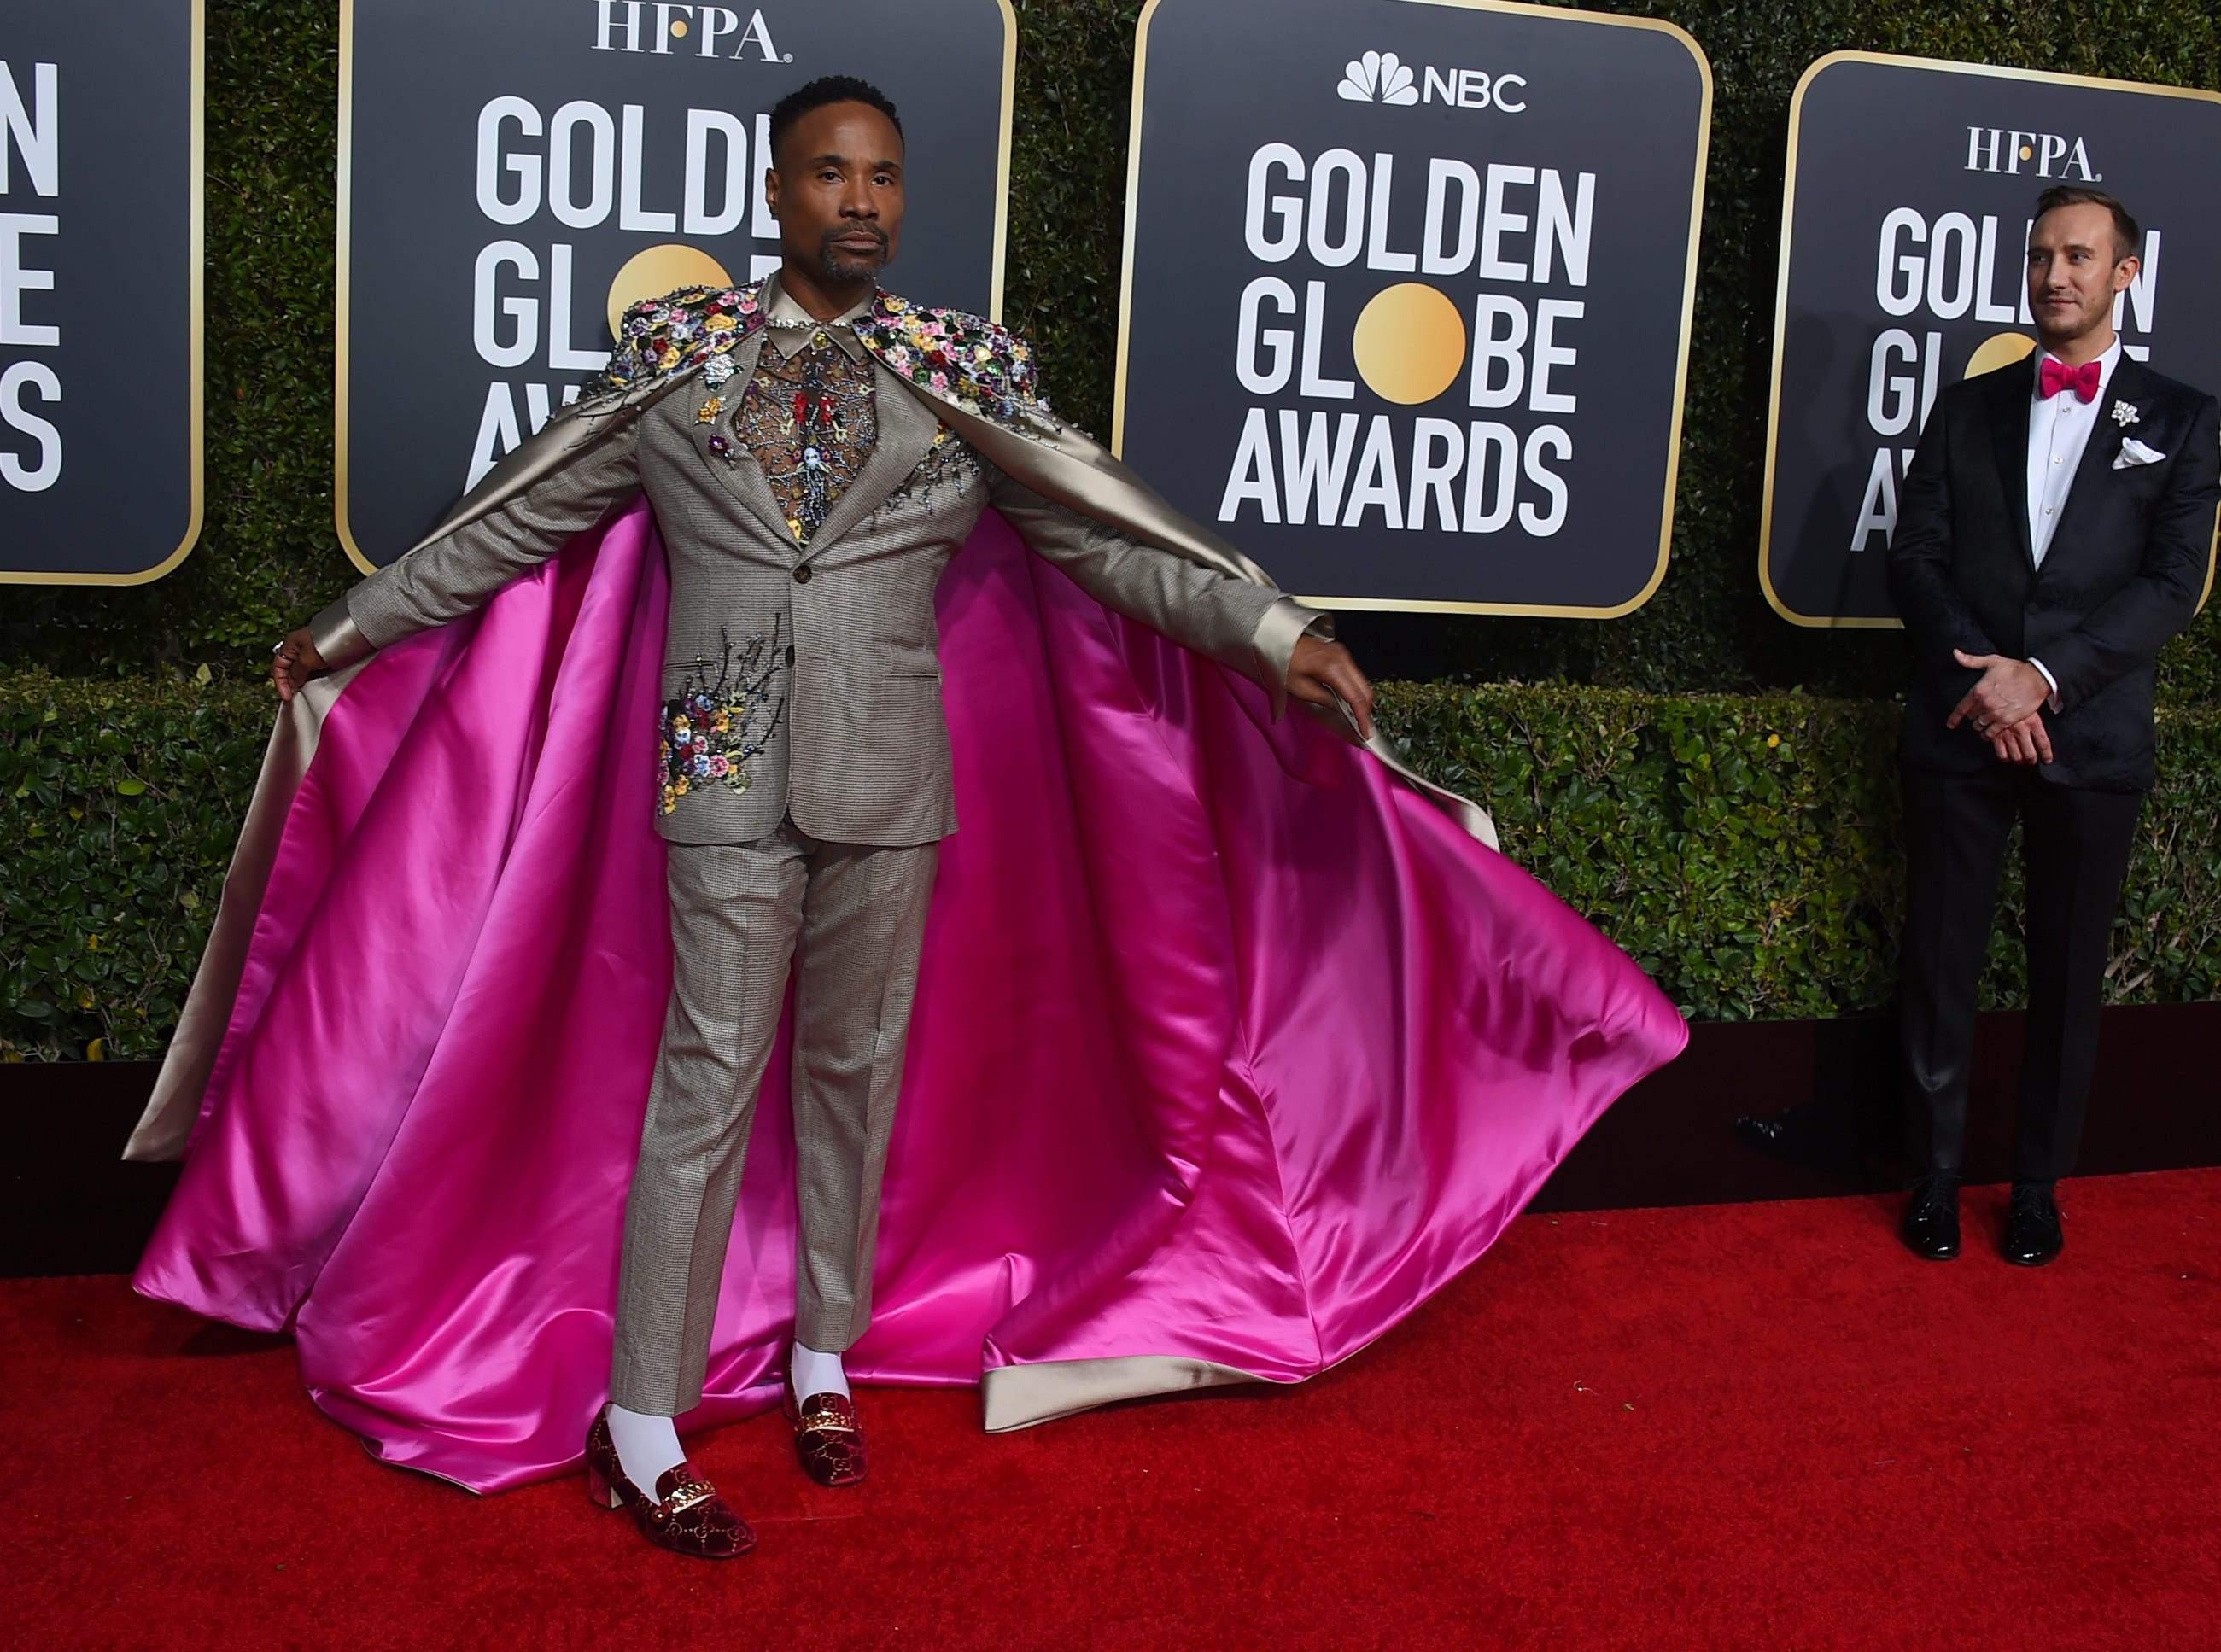 Billy Porter arrives at the 76th annual Golden Globe Awards at the Beverly Hilton Hotel.